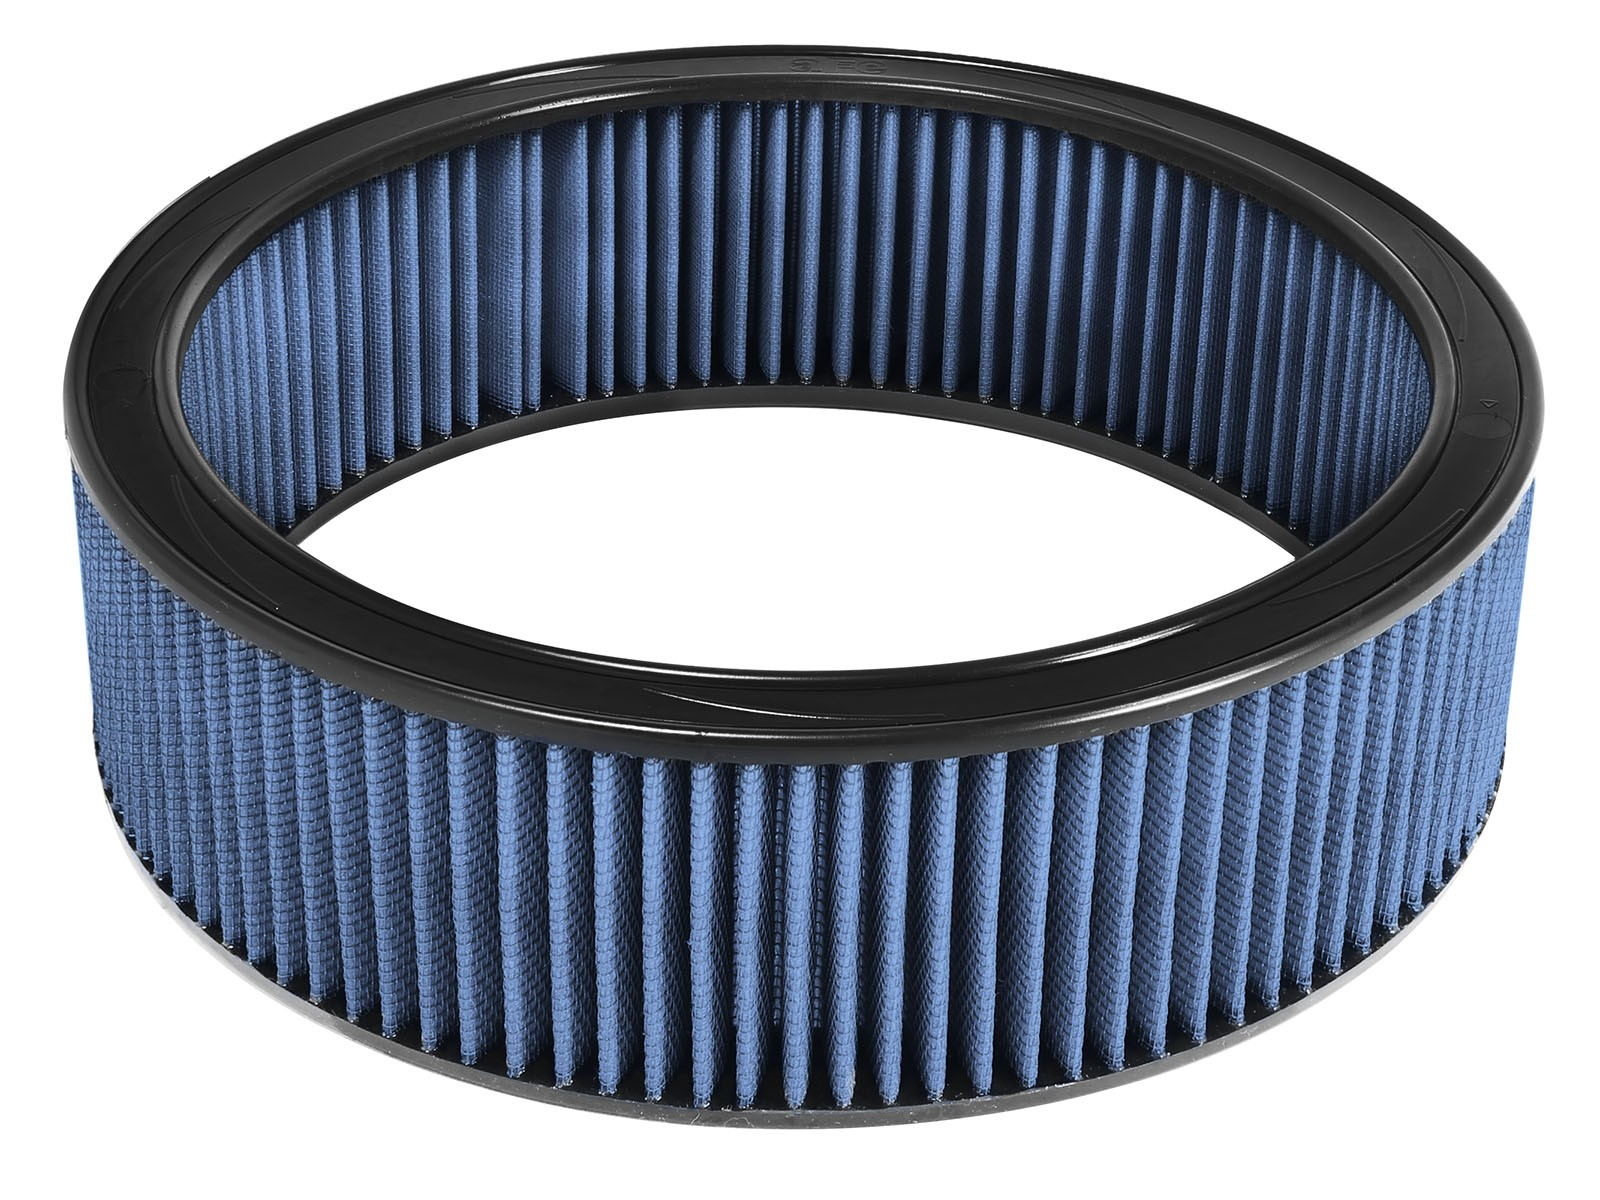 aFe POWER 10-10013 Magnum FLOW Pro 5R Air Filter